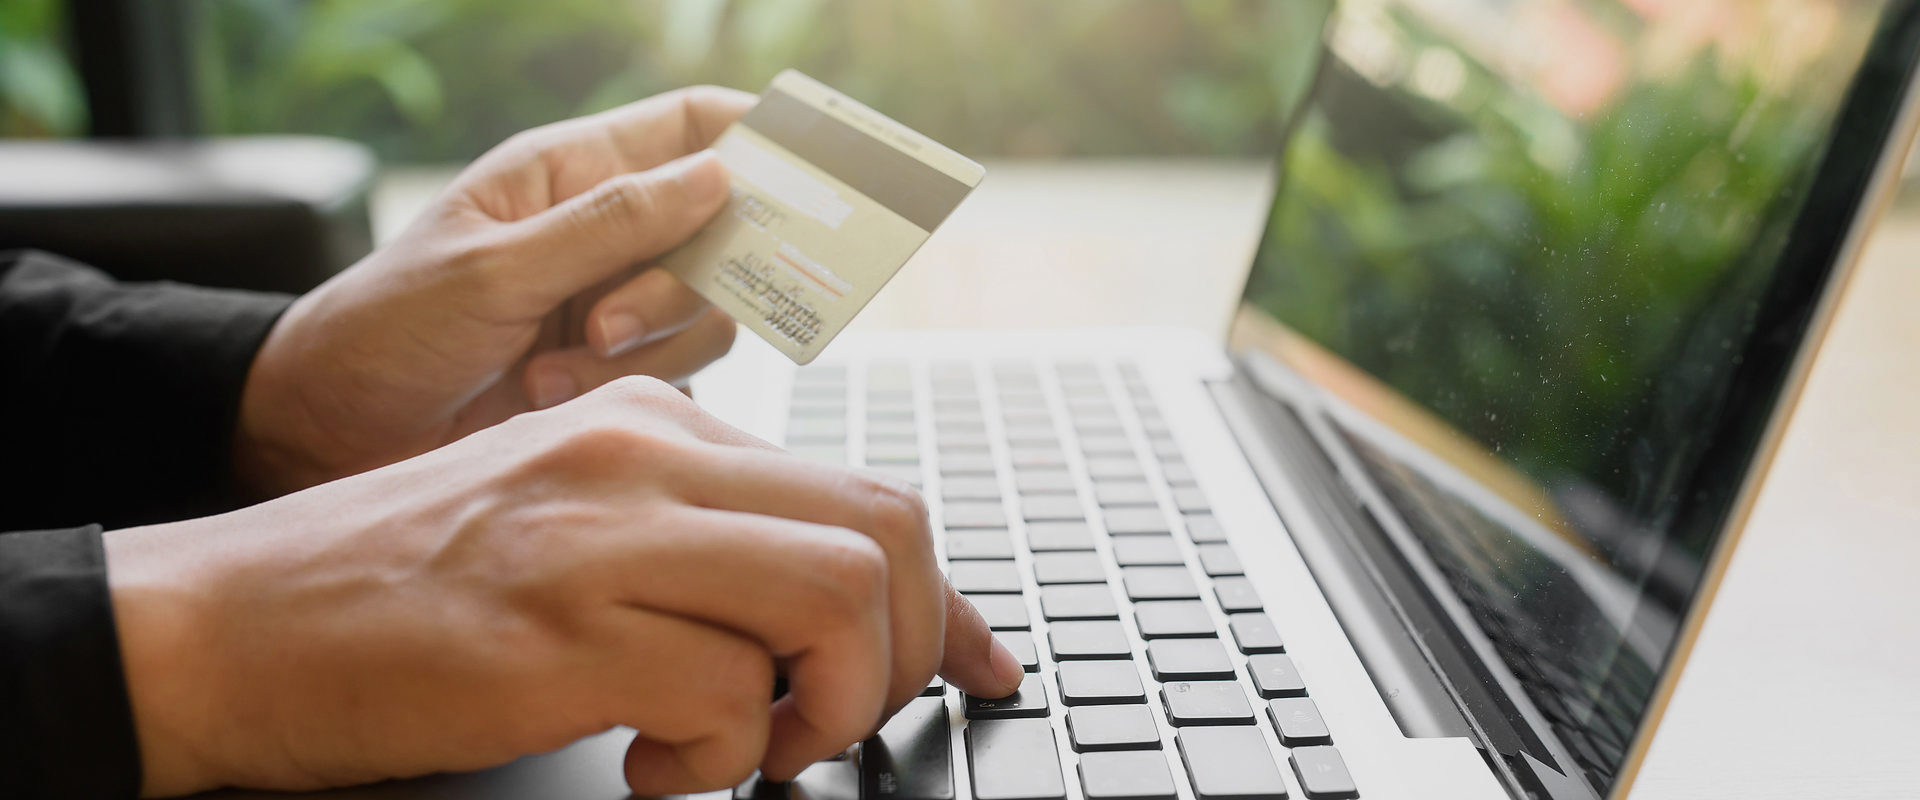 Claves del eCommerce para el Sector Retail